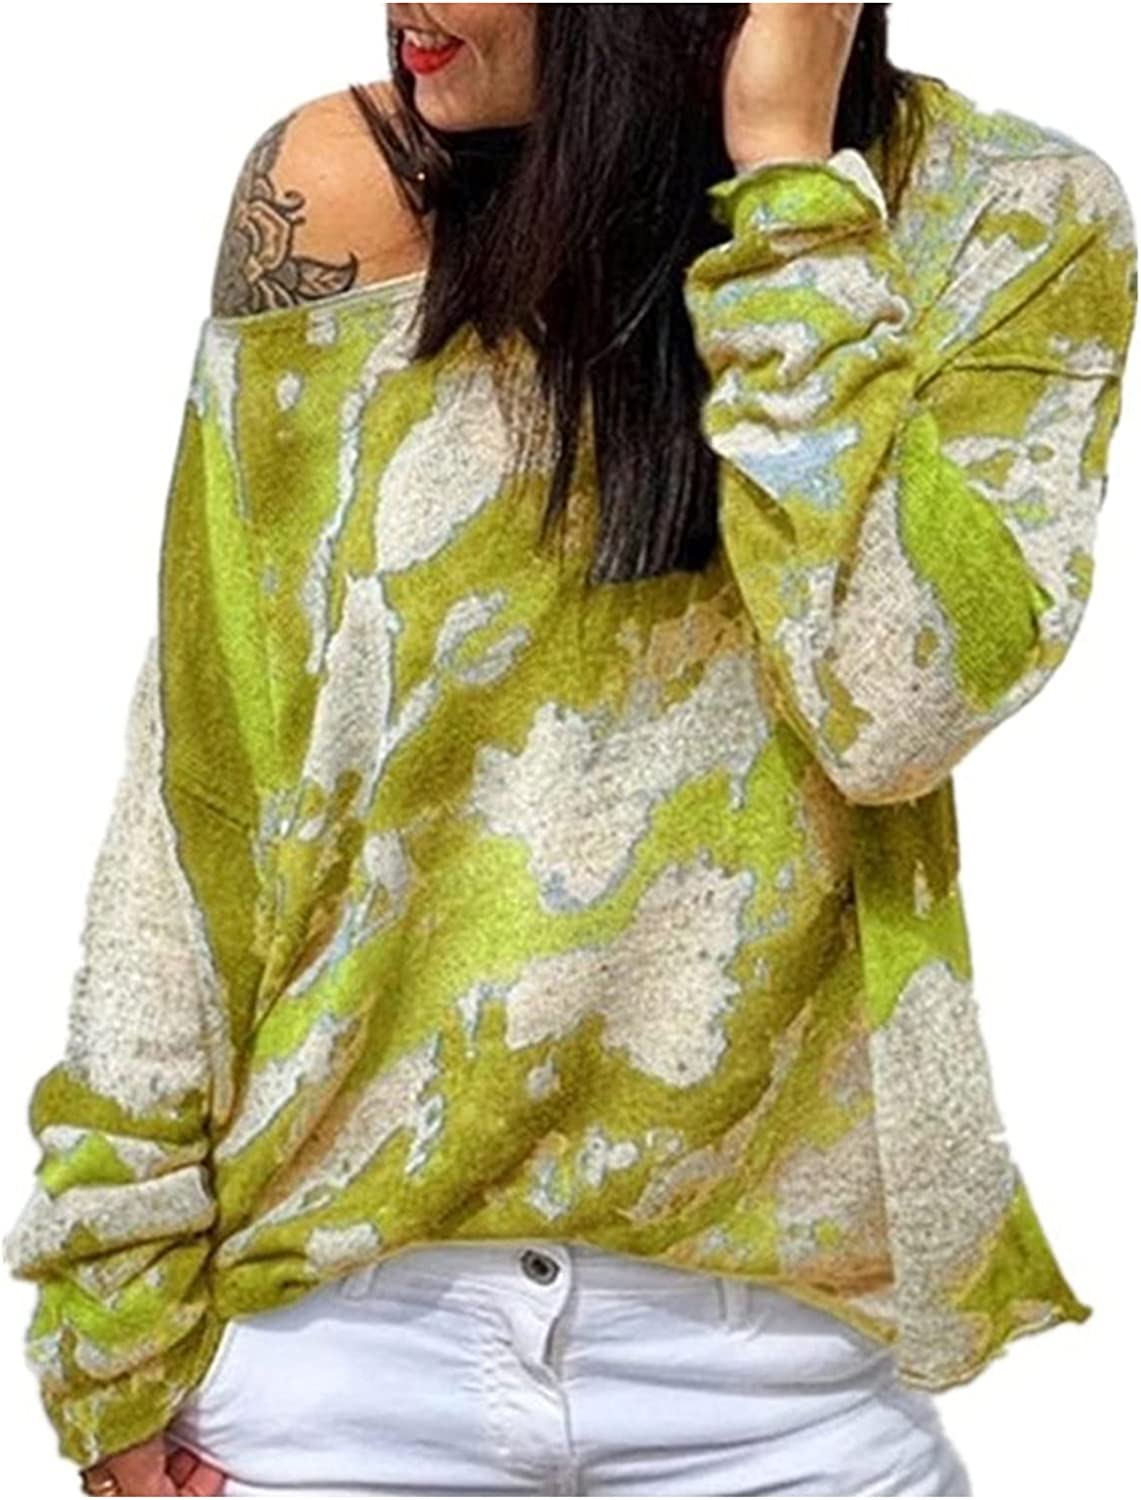 VonVonCo Pullover Sweaters for Women Round Neck Loose Long Sleeve Shirt Camouflage Pullover Casual Sweater